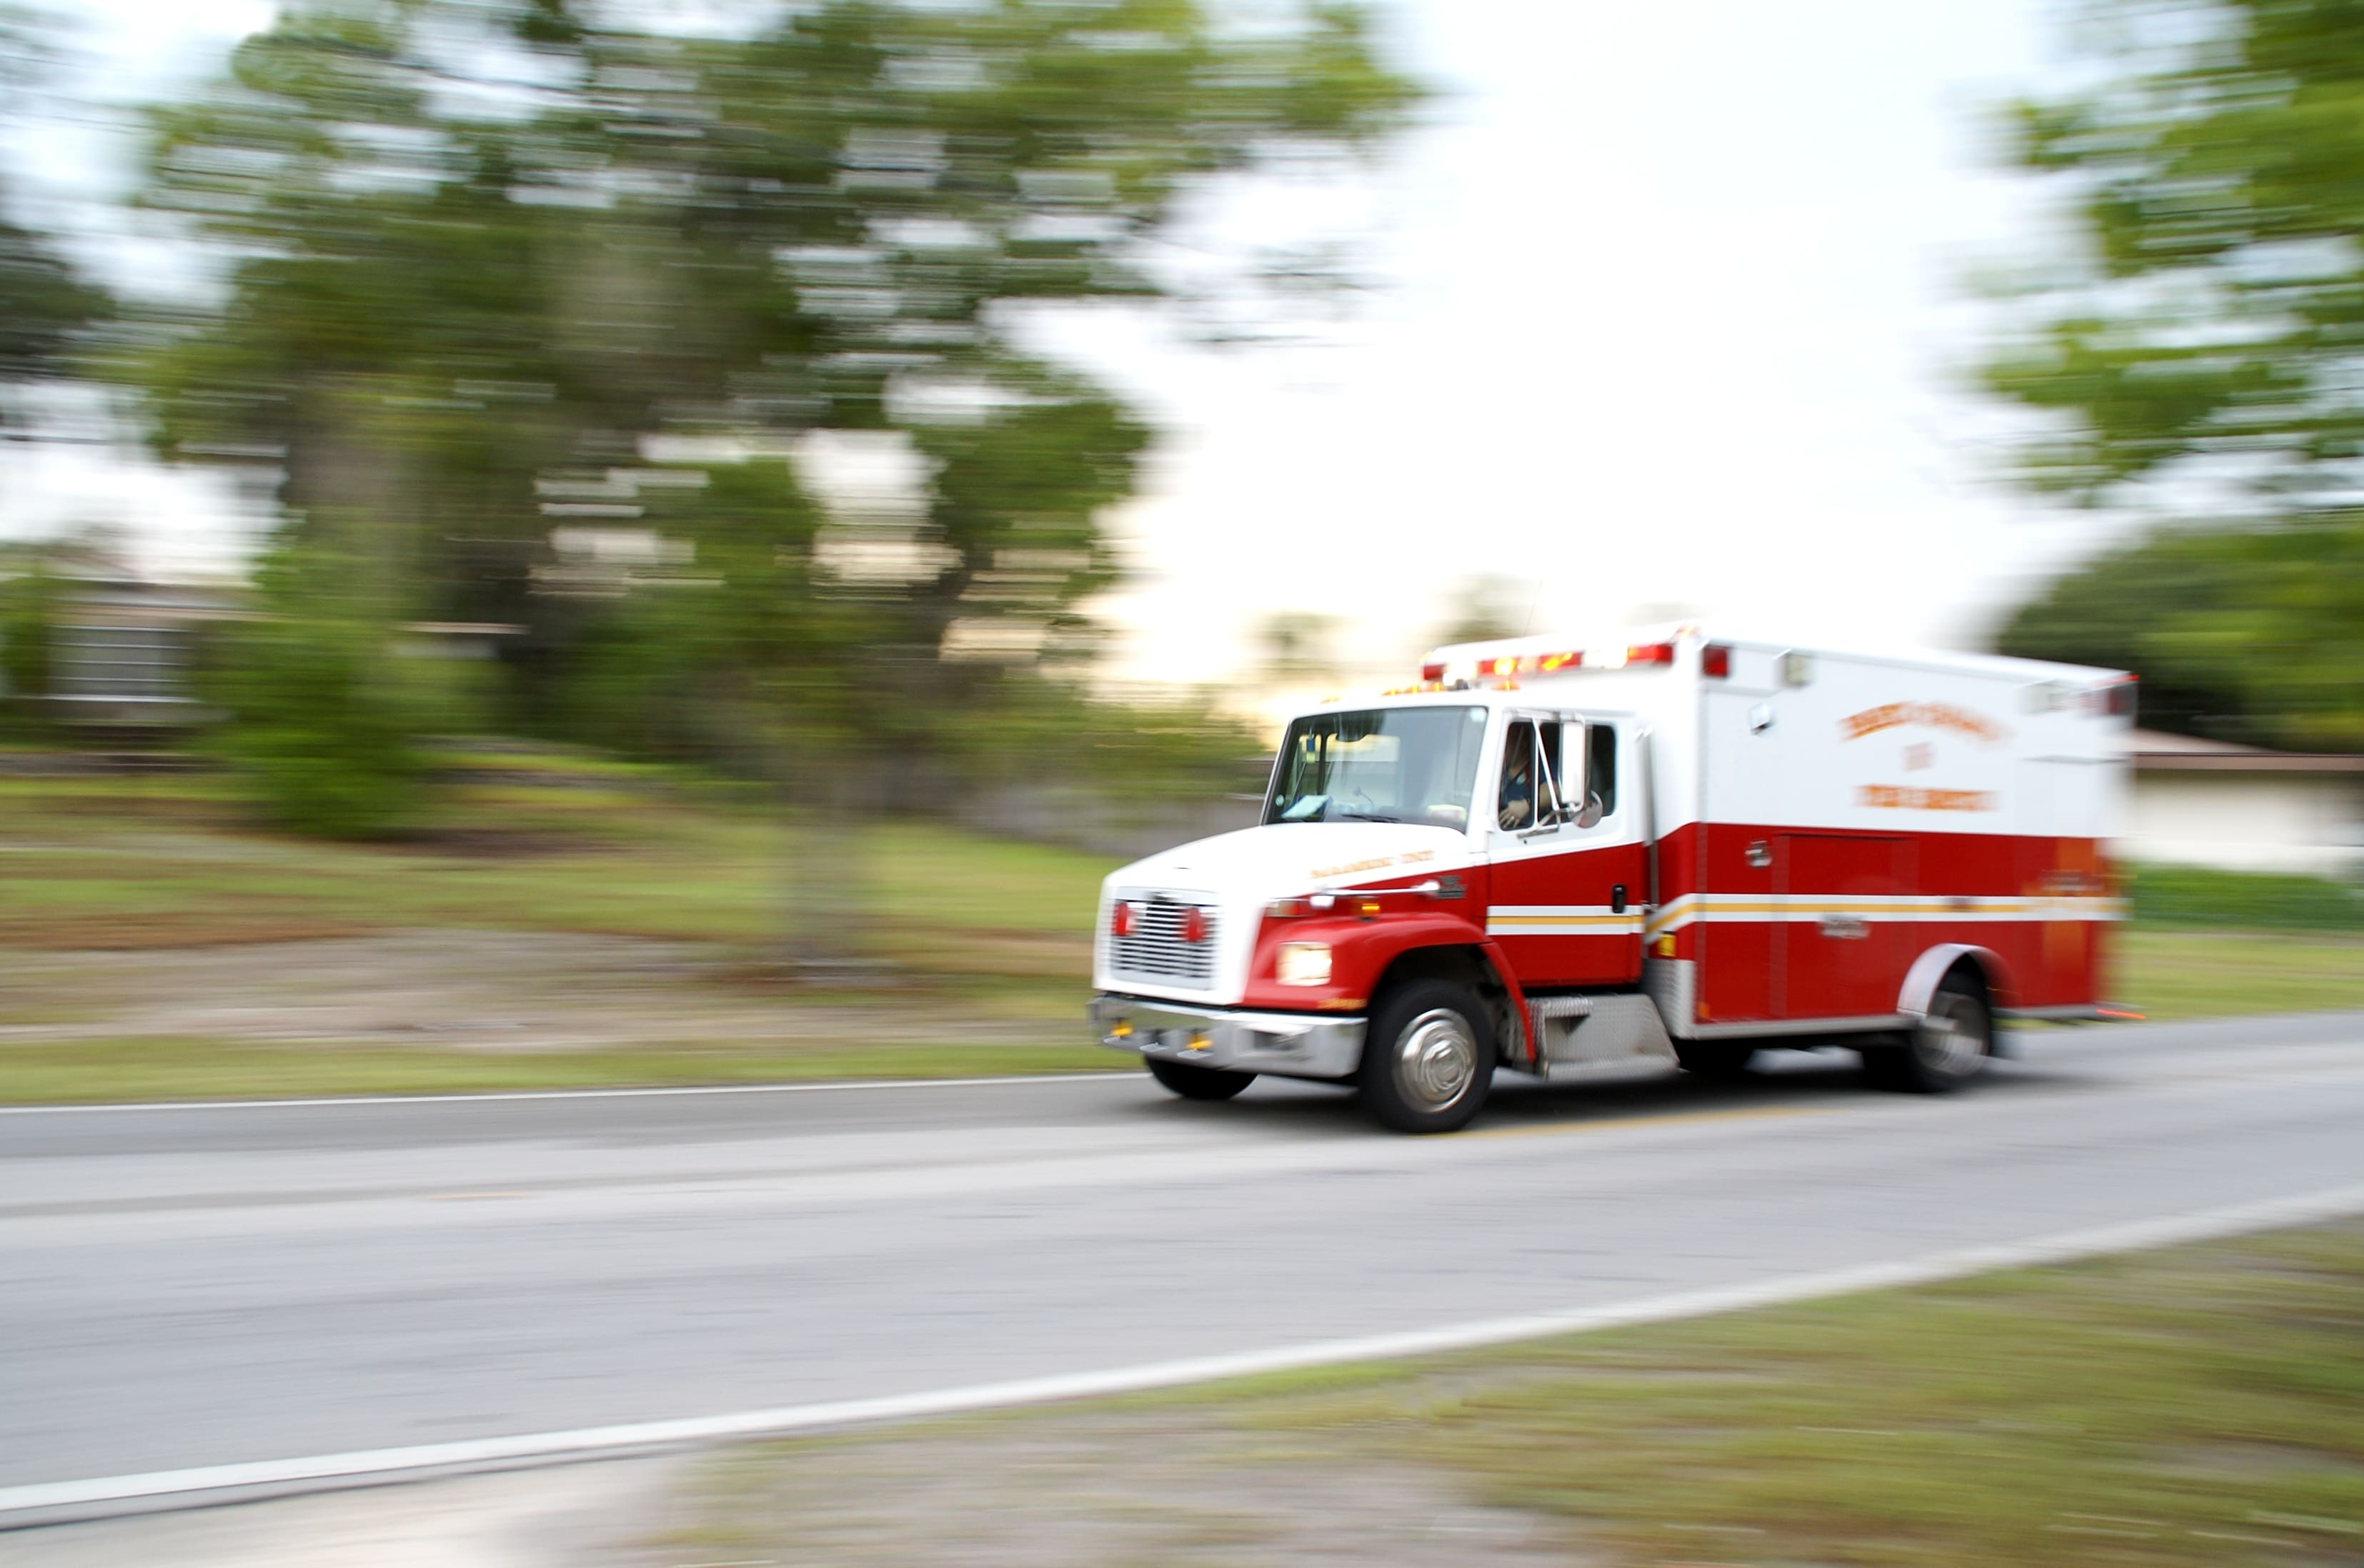 ambulance with blurry background